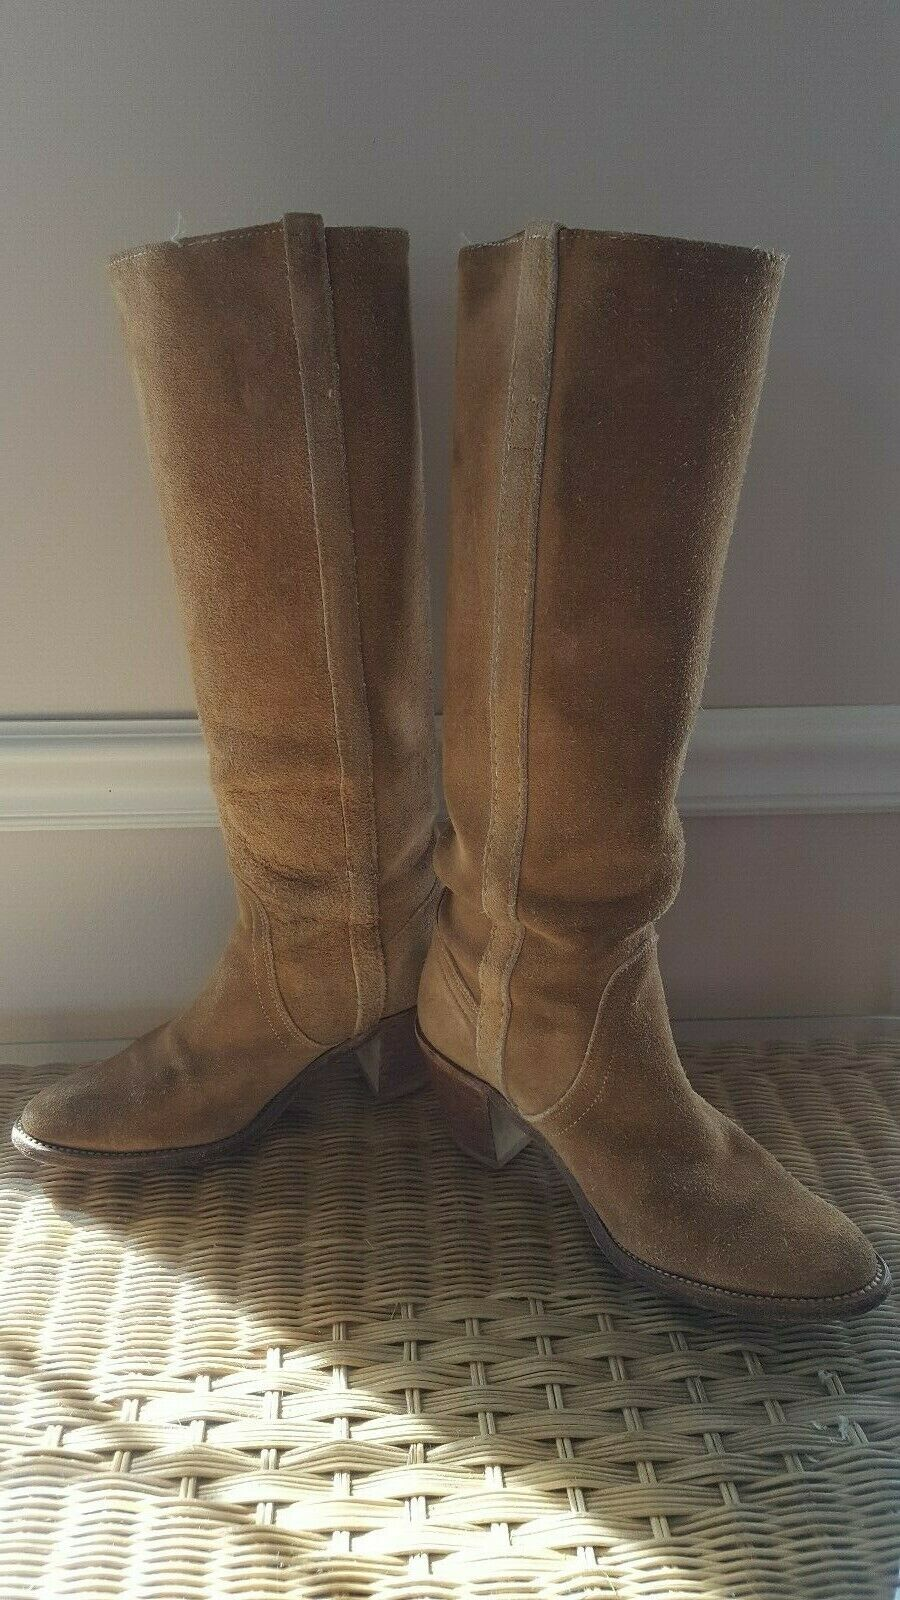 FRYE RENEE BEIGE SUEDE LEATHER LEATHER LEATHER KNEE HIGH COWBOY WESTERN BOOTS SZ 5.5 MSRP  378 73fb89